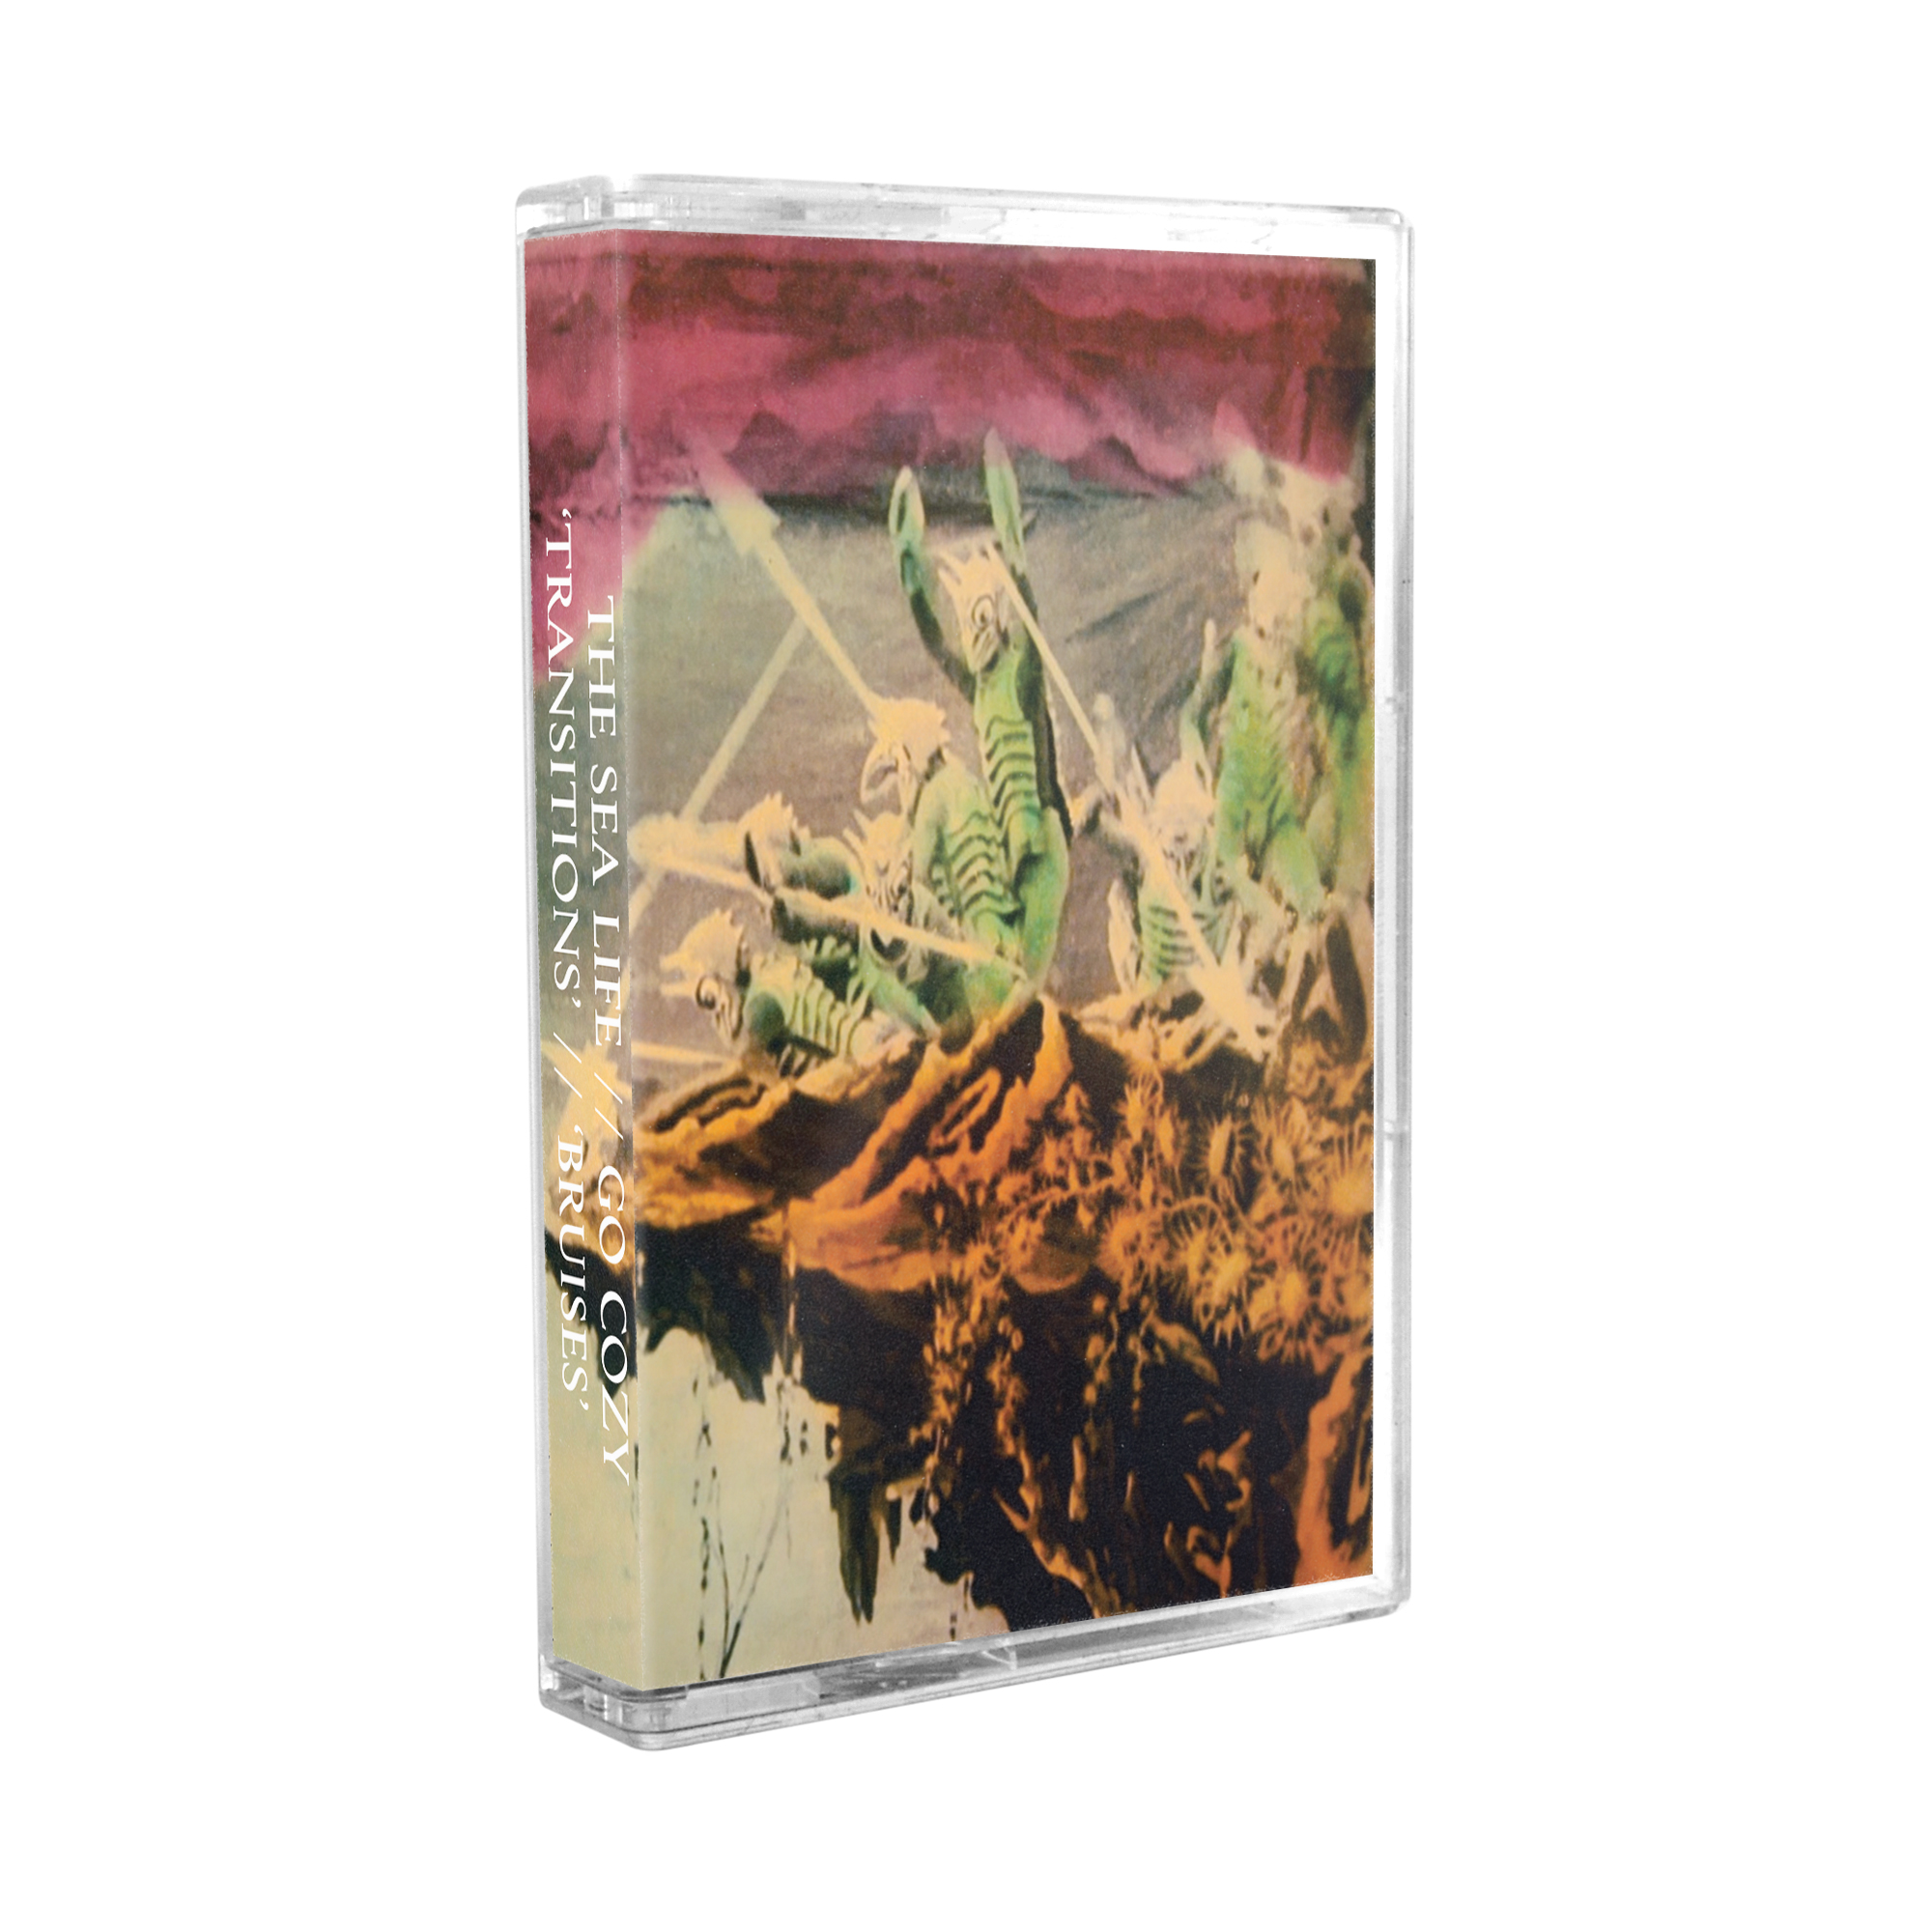 The Sea Life & Go Cozy - Transitions / Bruises (Split Cassette) *SOLD OUT*